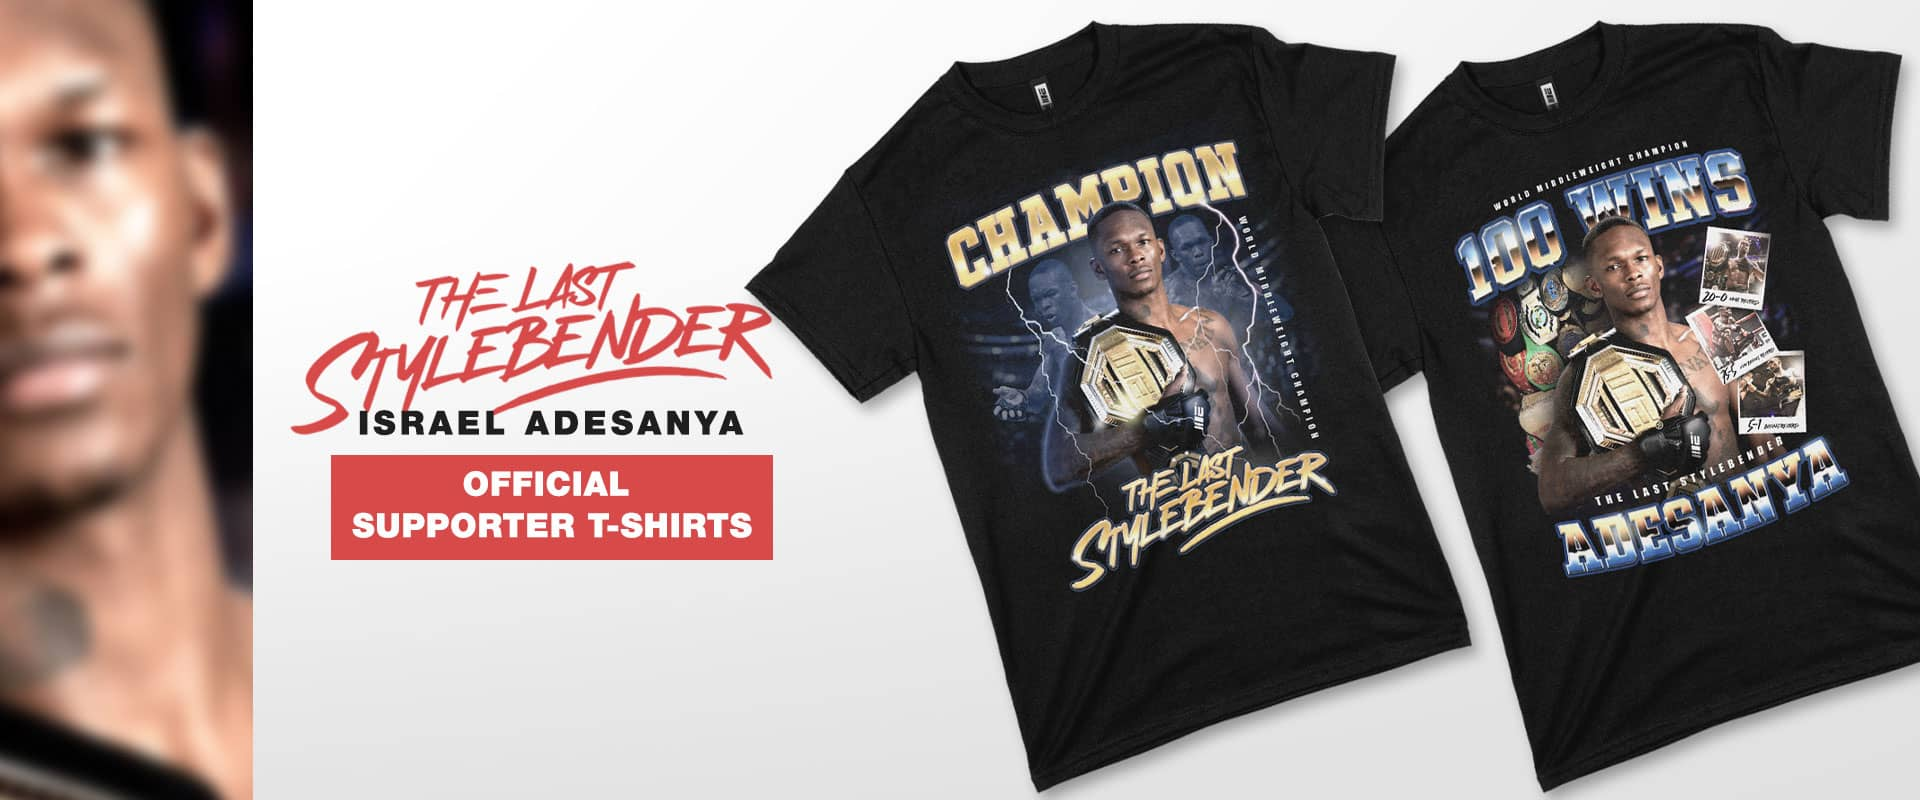 Israel Adesanya The Last Stylebender Official Supporter Tees, World Middleweight Champion 100 Wins, Champion Tee, MMA Apparel, Engage MMA